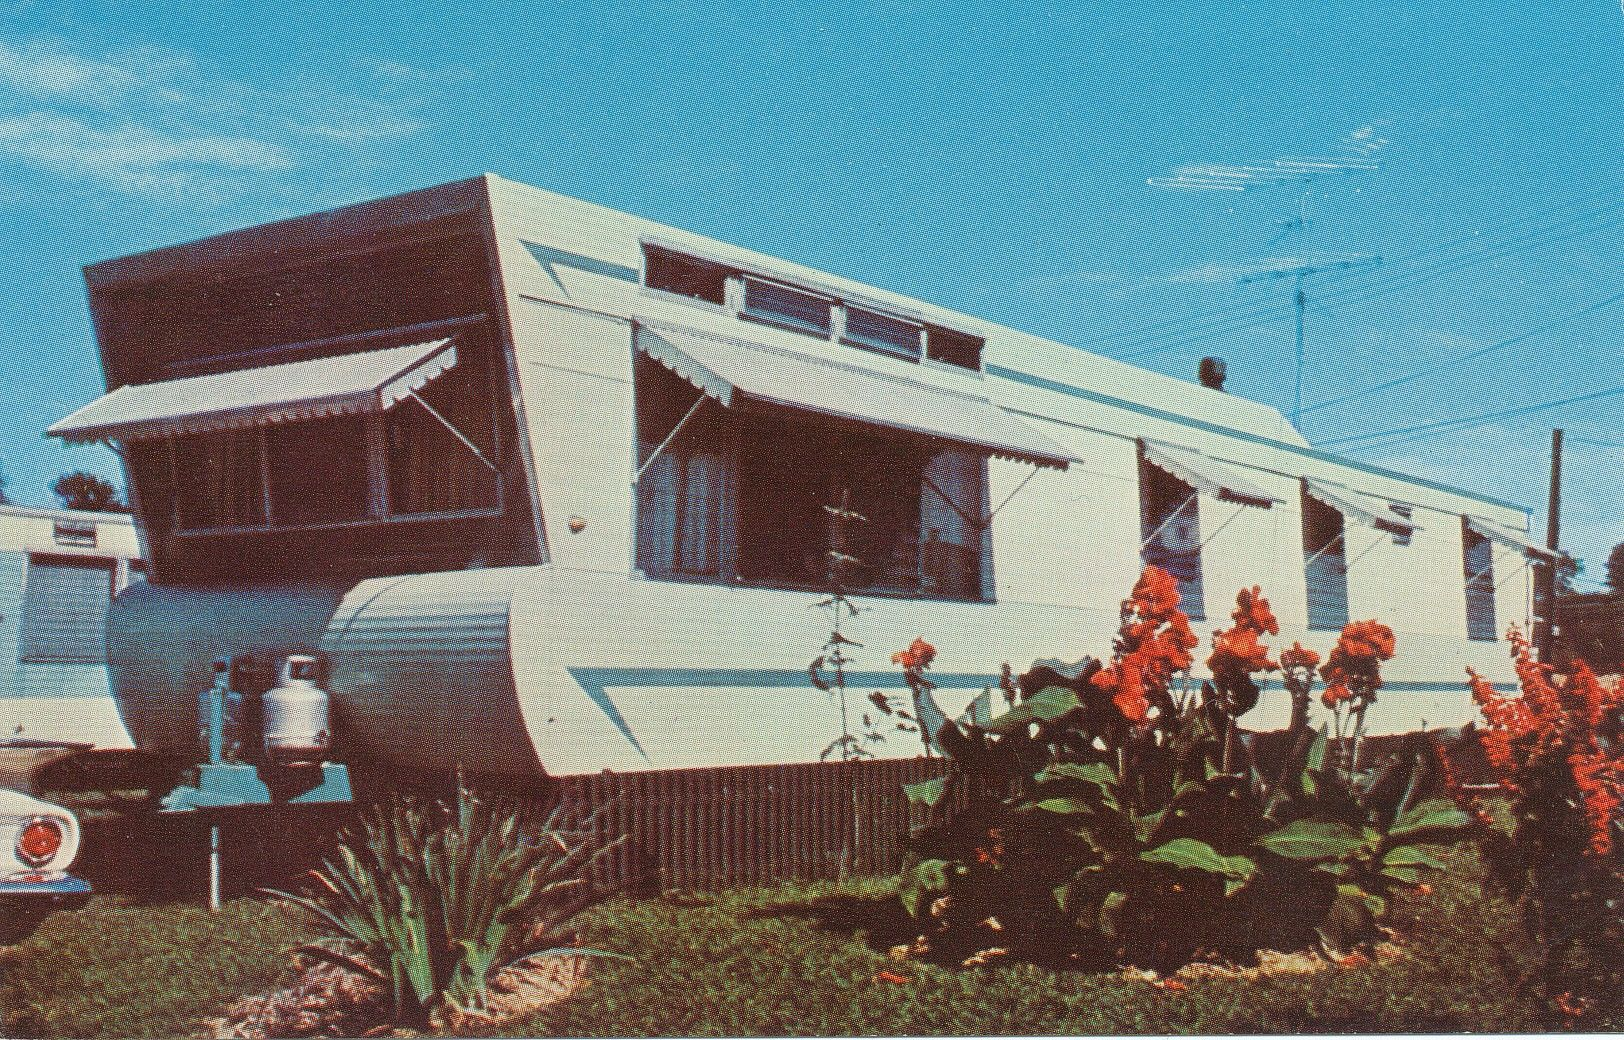 Mobile Homes For Sale Alberta >> 13 Spectacular Vintage Mobile Homes For Sale - Kelsey Bass ...